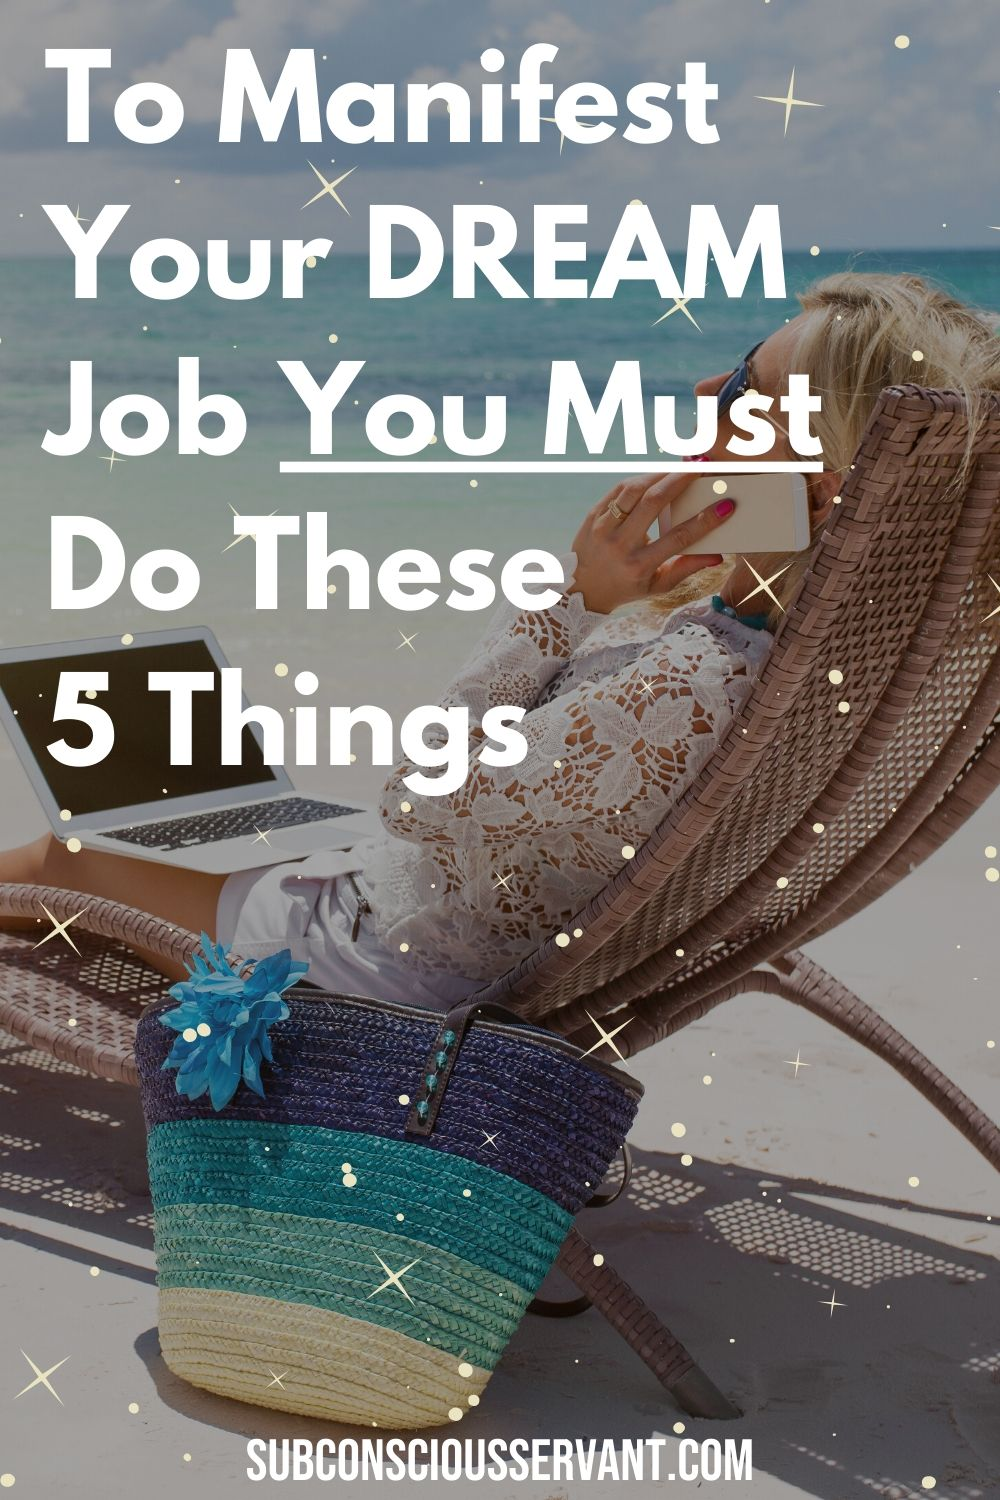 To Manifest Your Dream Job You Must Do These 5 Things